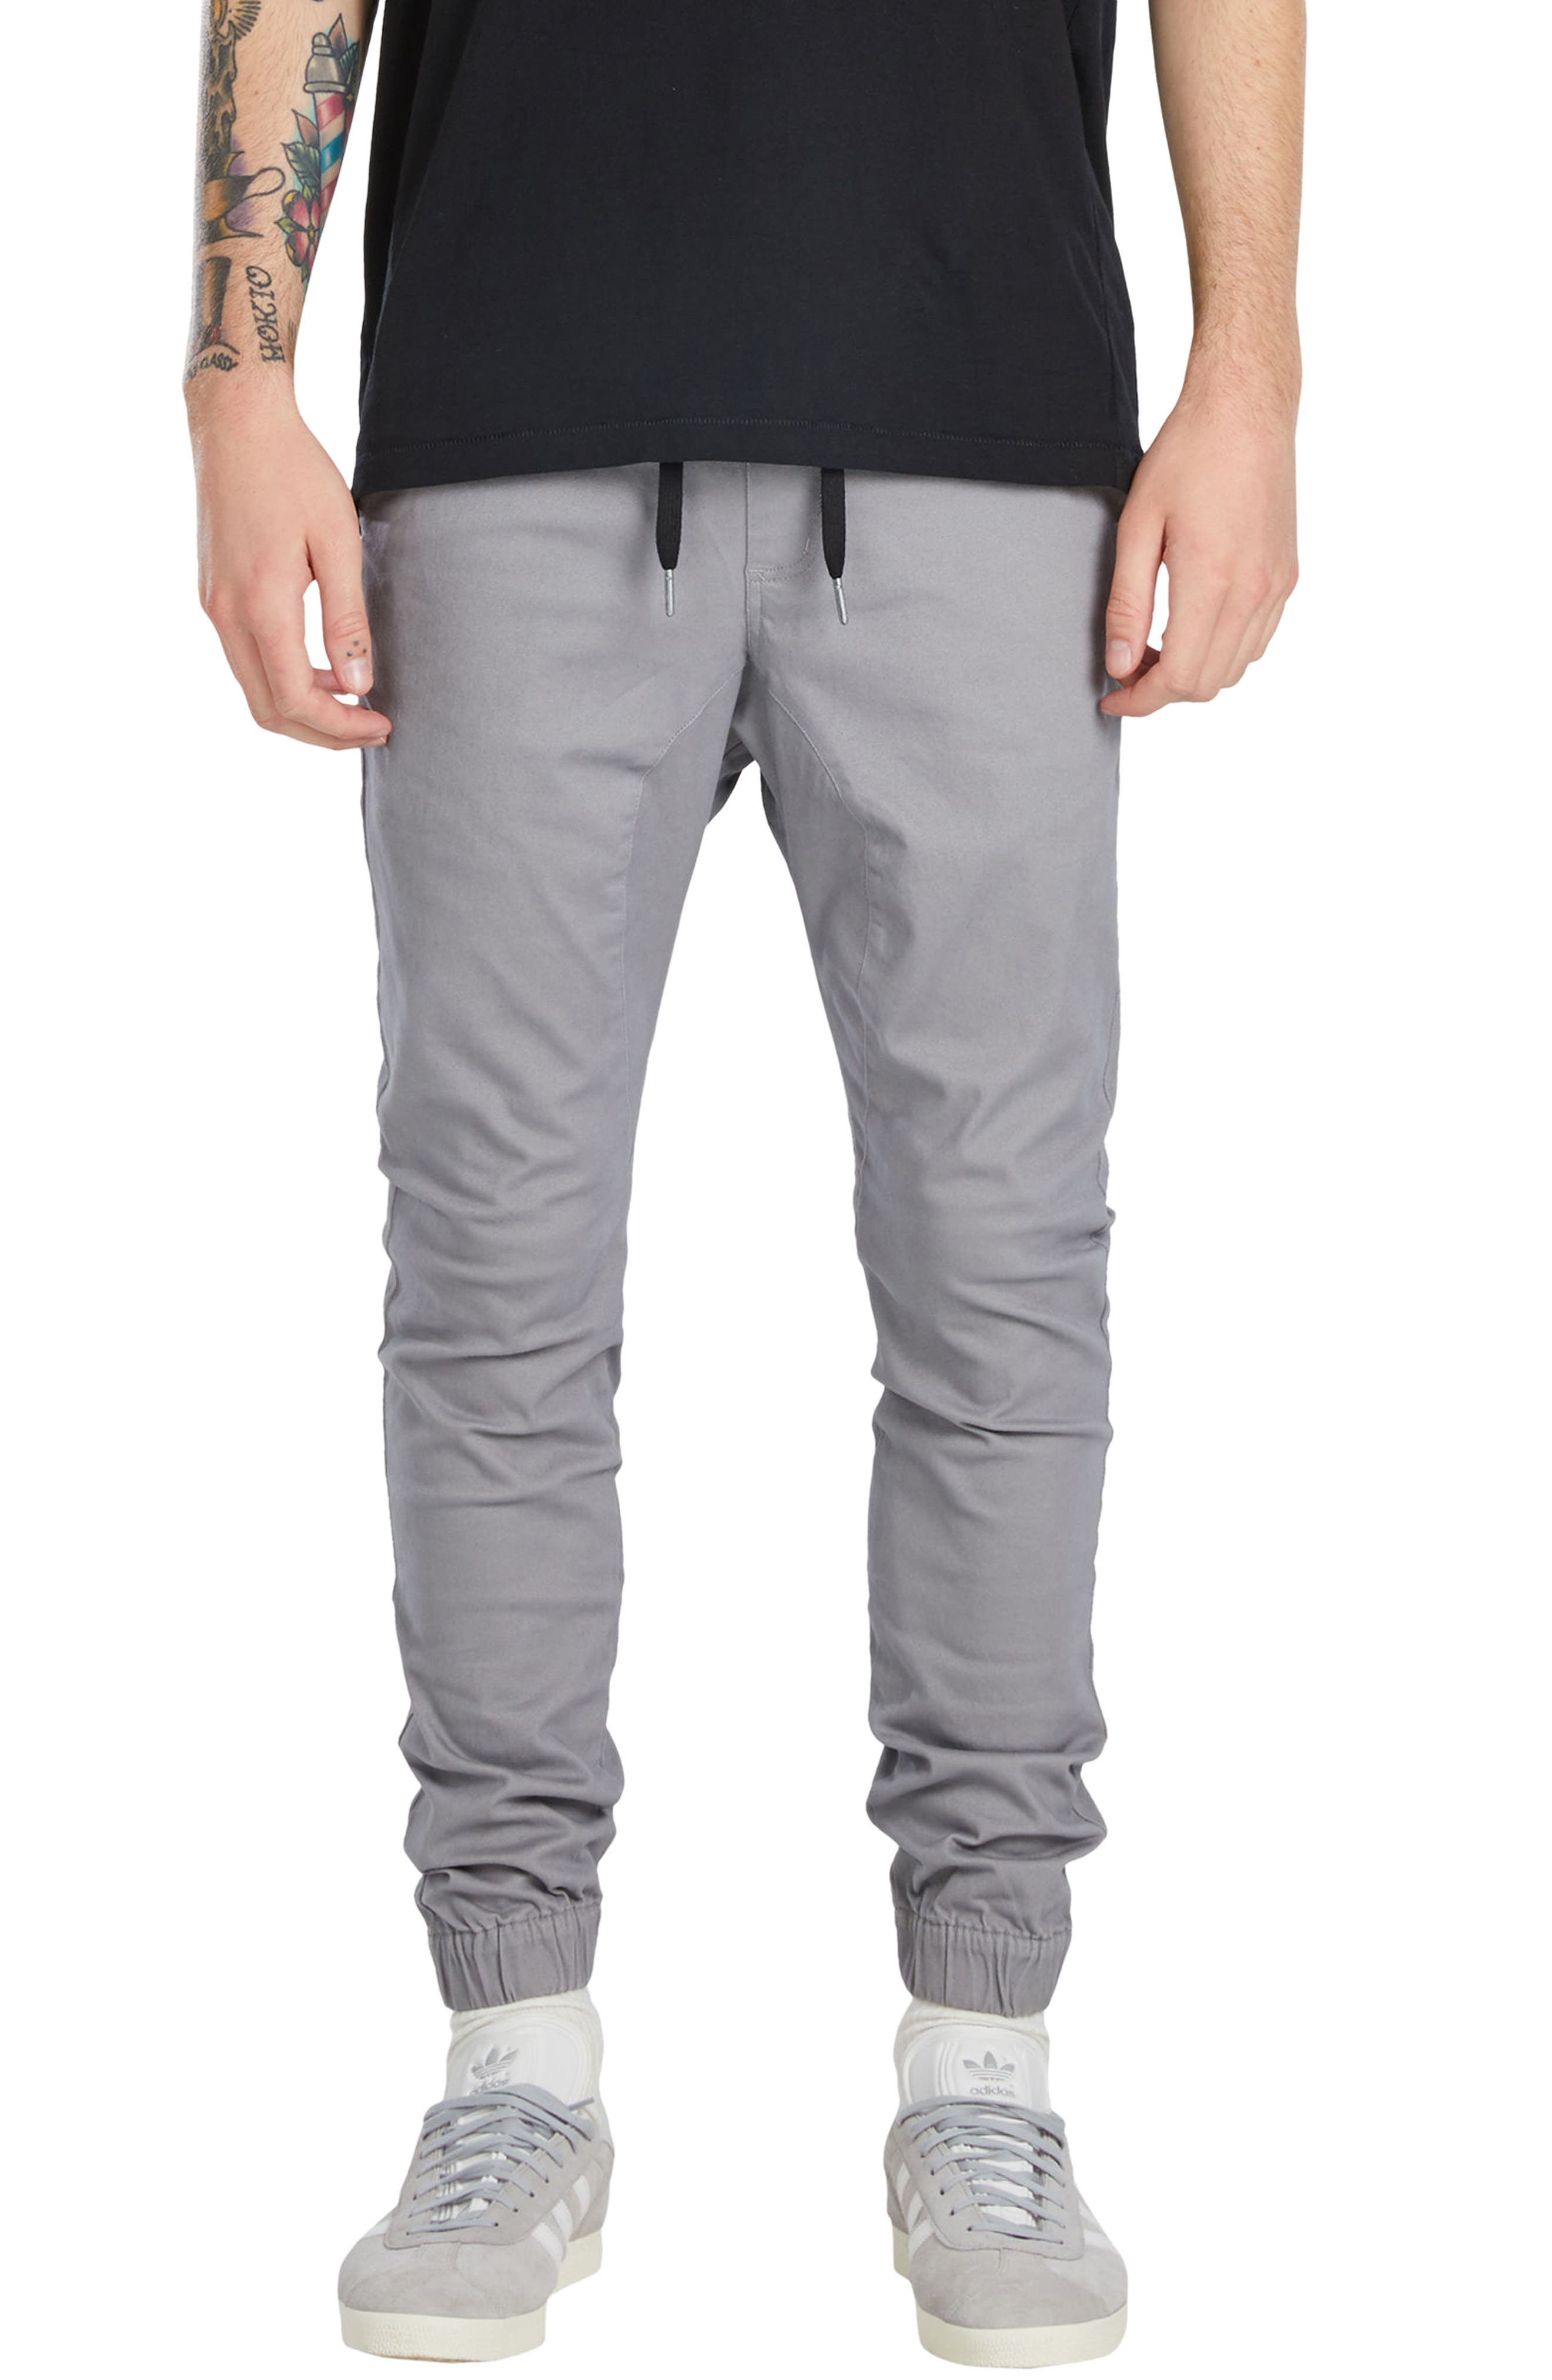 Sureshot Jogger Pants,                             Main thumbnail 1, color,                             CEMENT